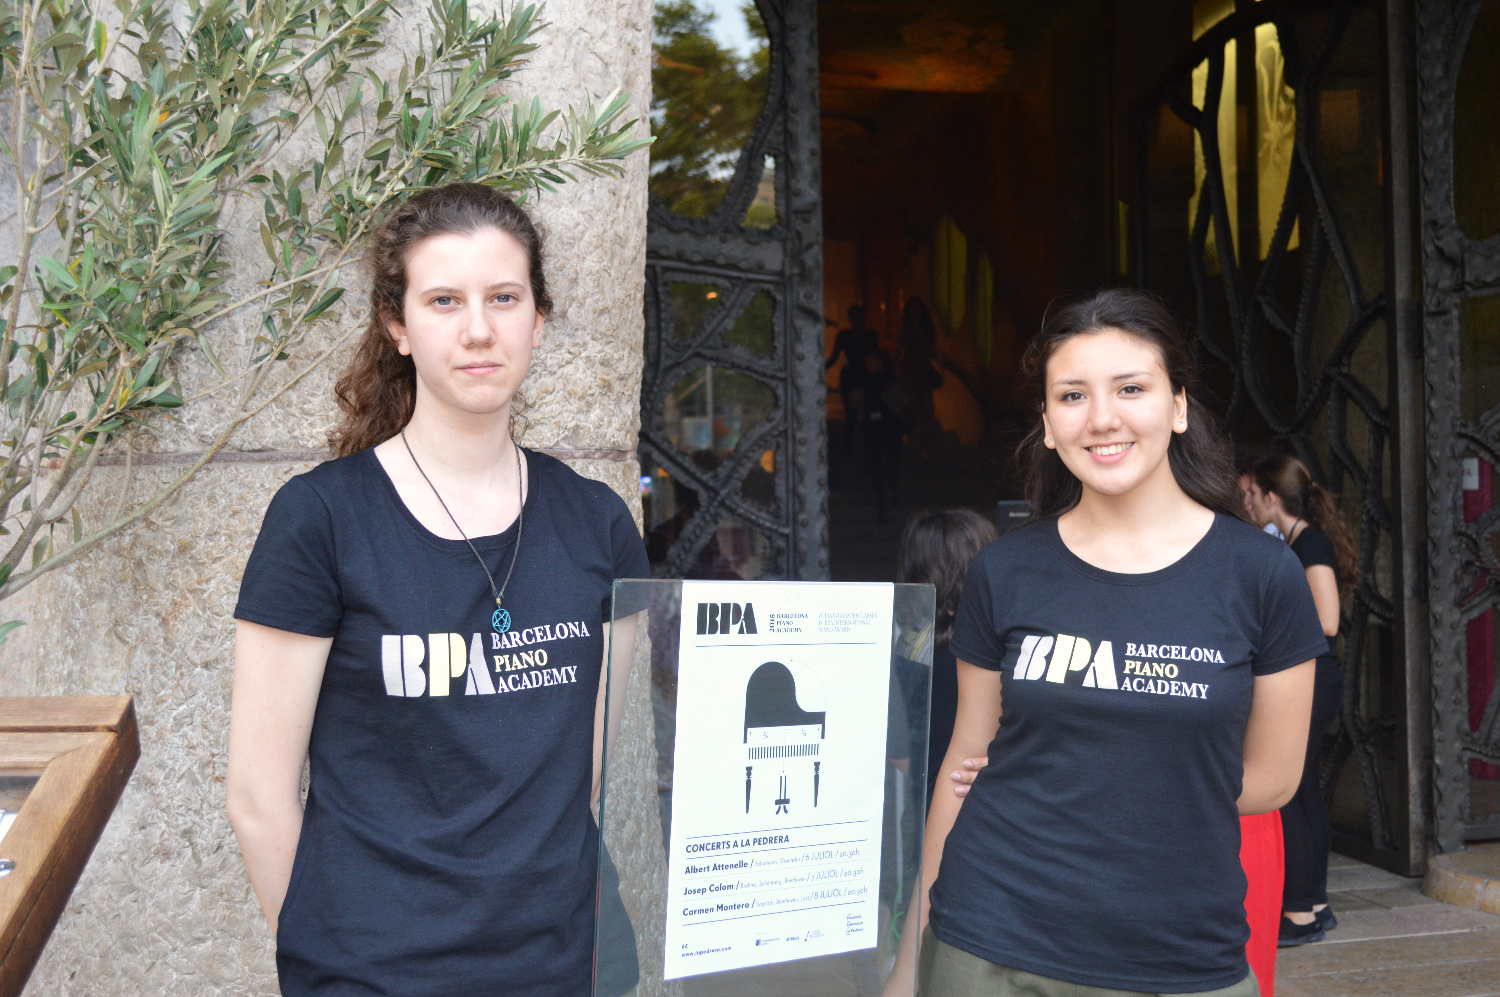 IV BPA Concert Series at La Pedrera